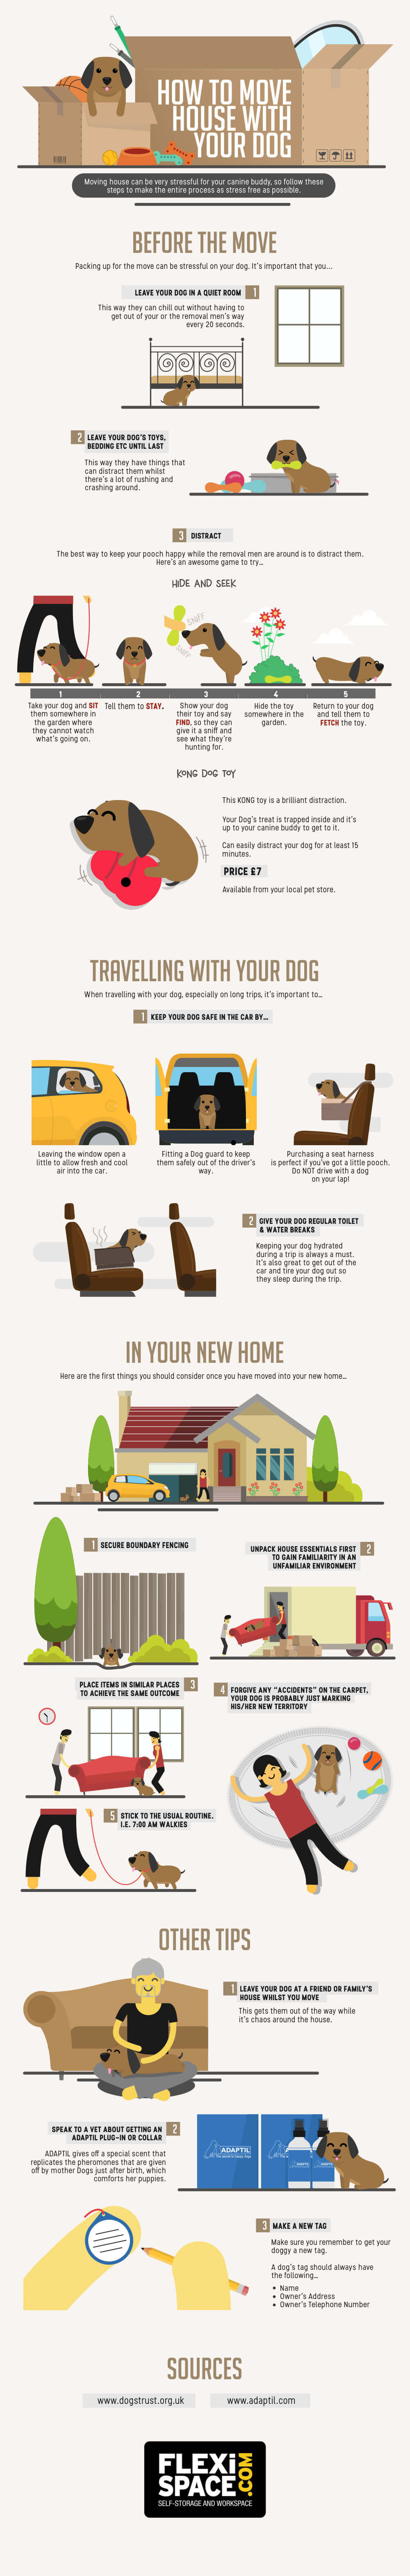 A Guide To Make It Easier For Your Dog To Move Houses - Infographic